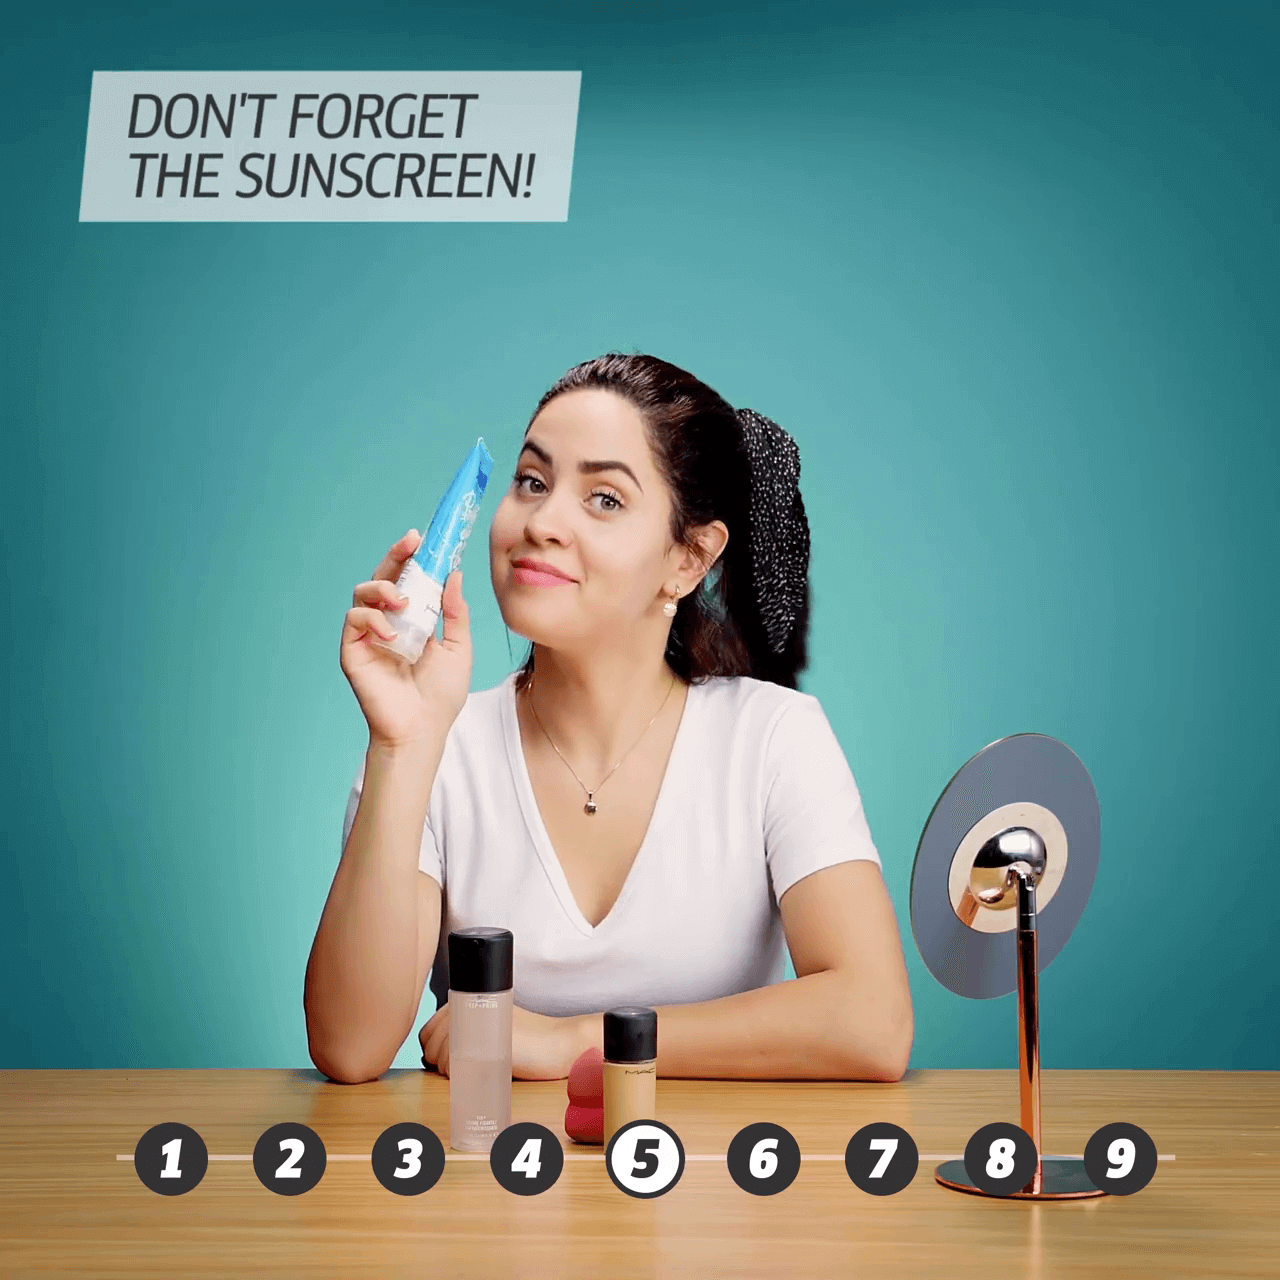 Makeup Tips For Hot Summer Days